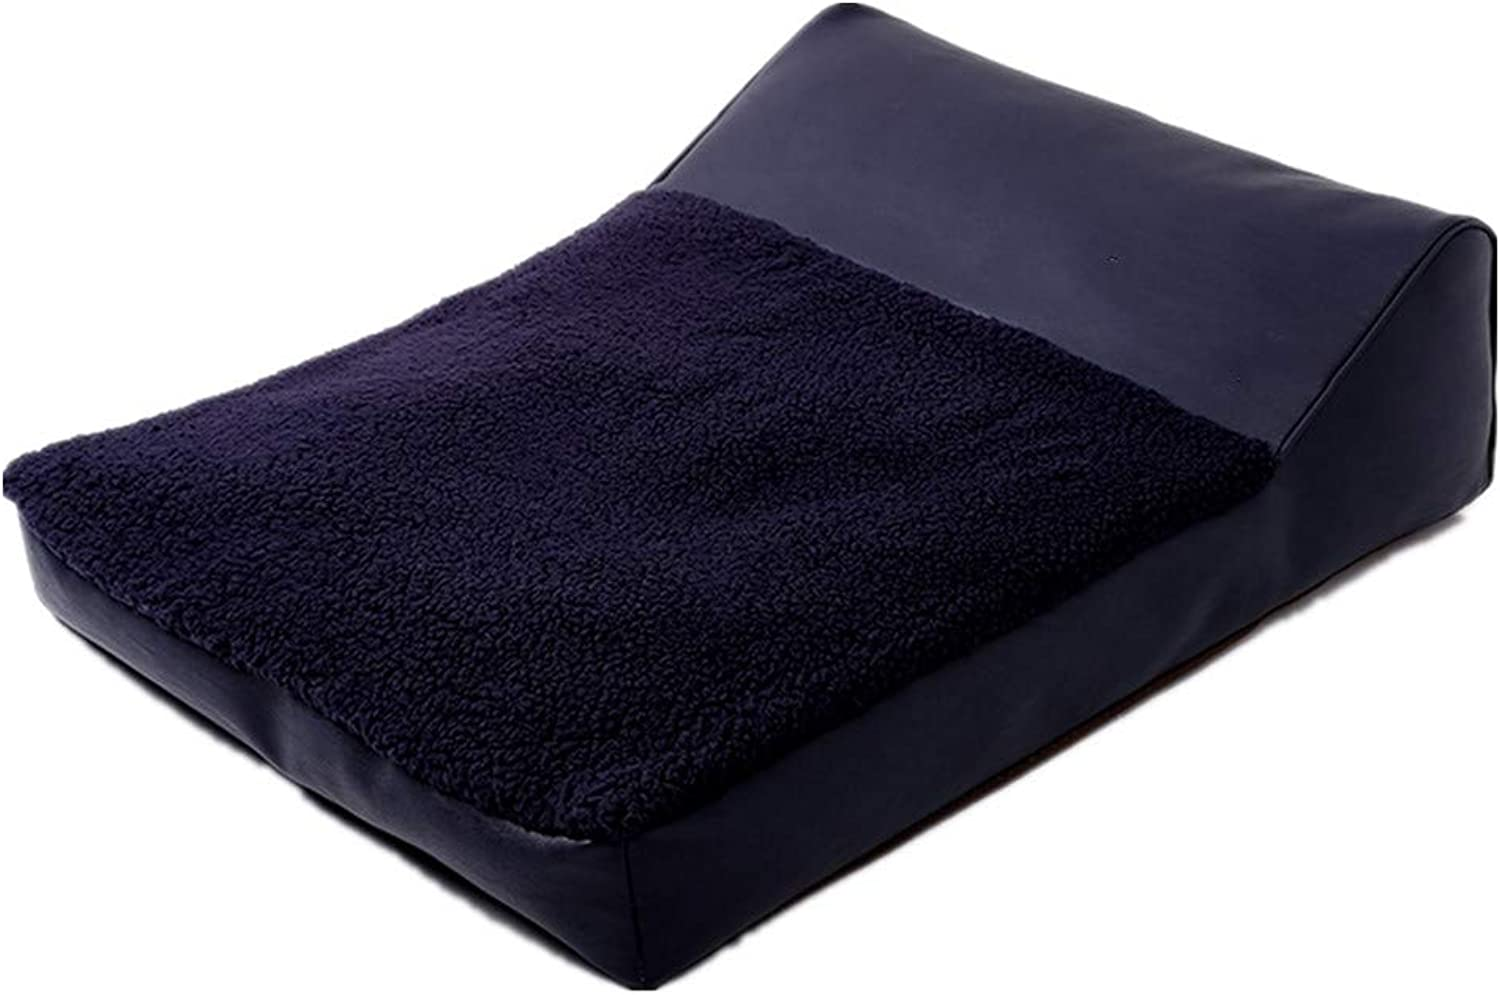 Mzdpp Soft And Comfortable Dog Bed Pet Warm Kennel Cat Litter Black Washable 80X60X10Cm 80X60X10Cm